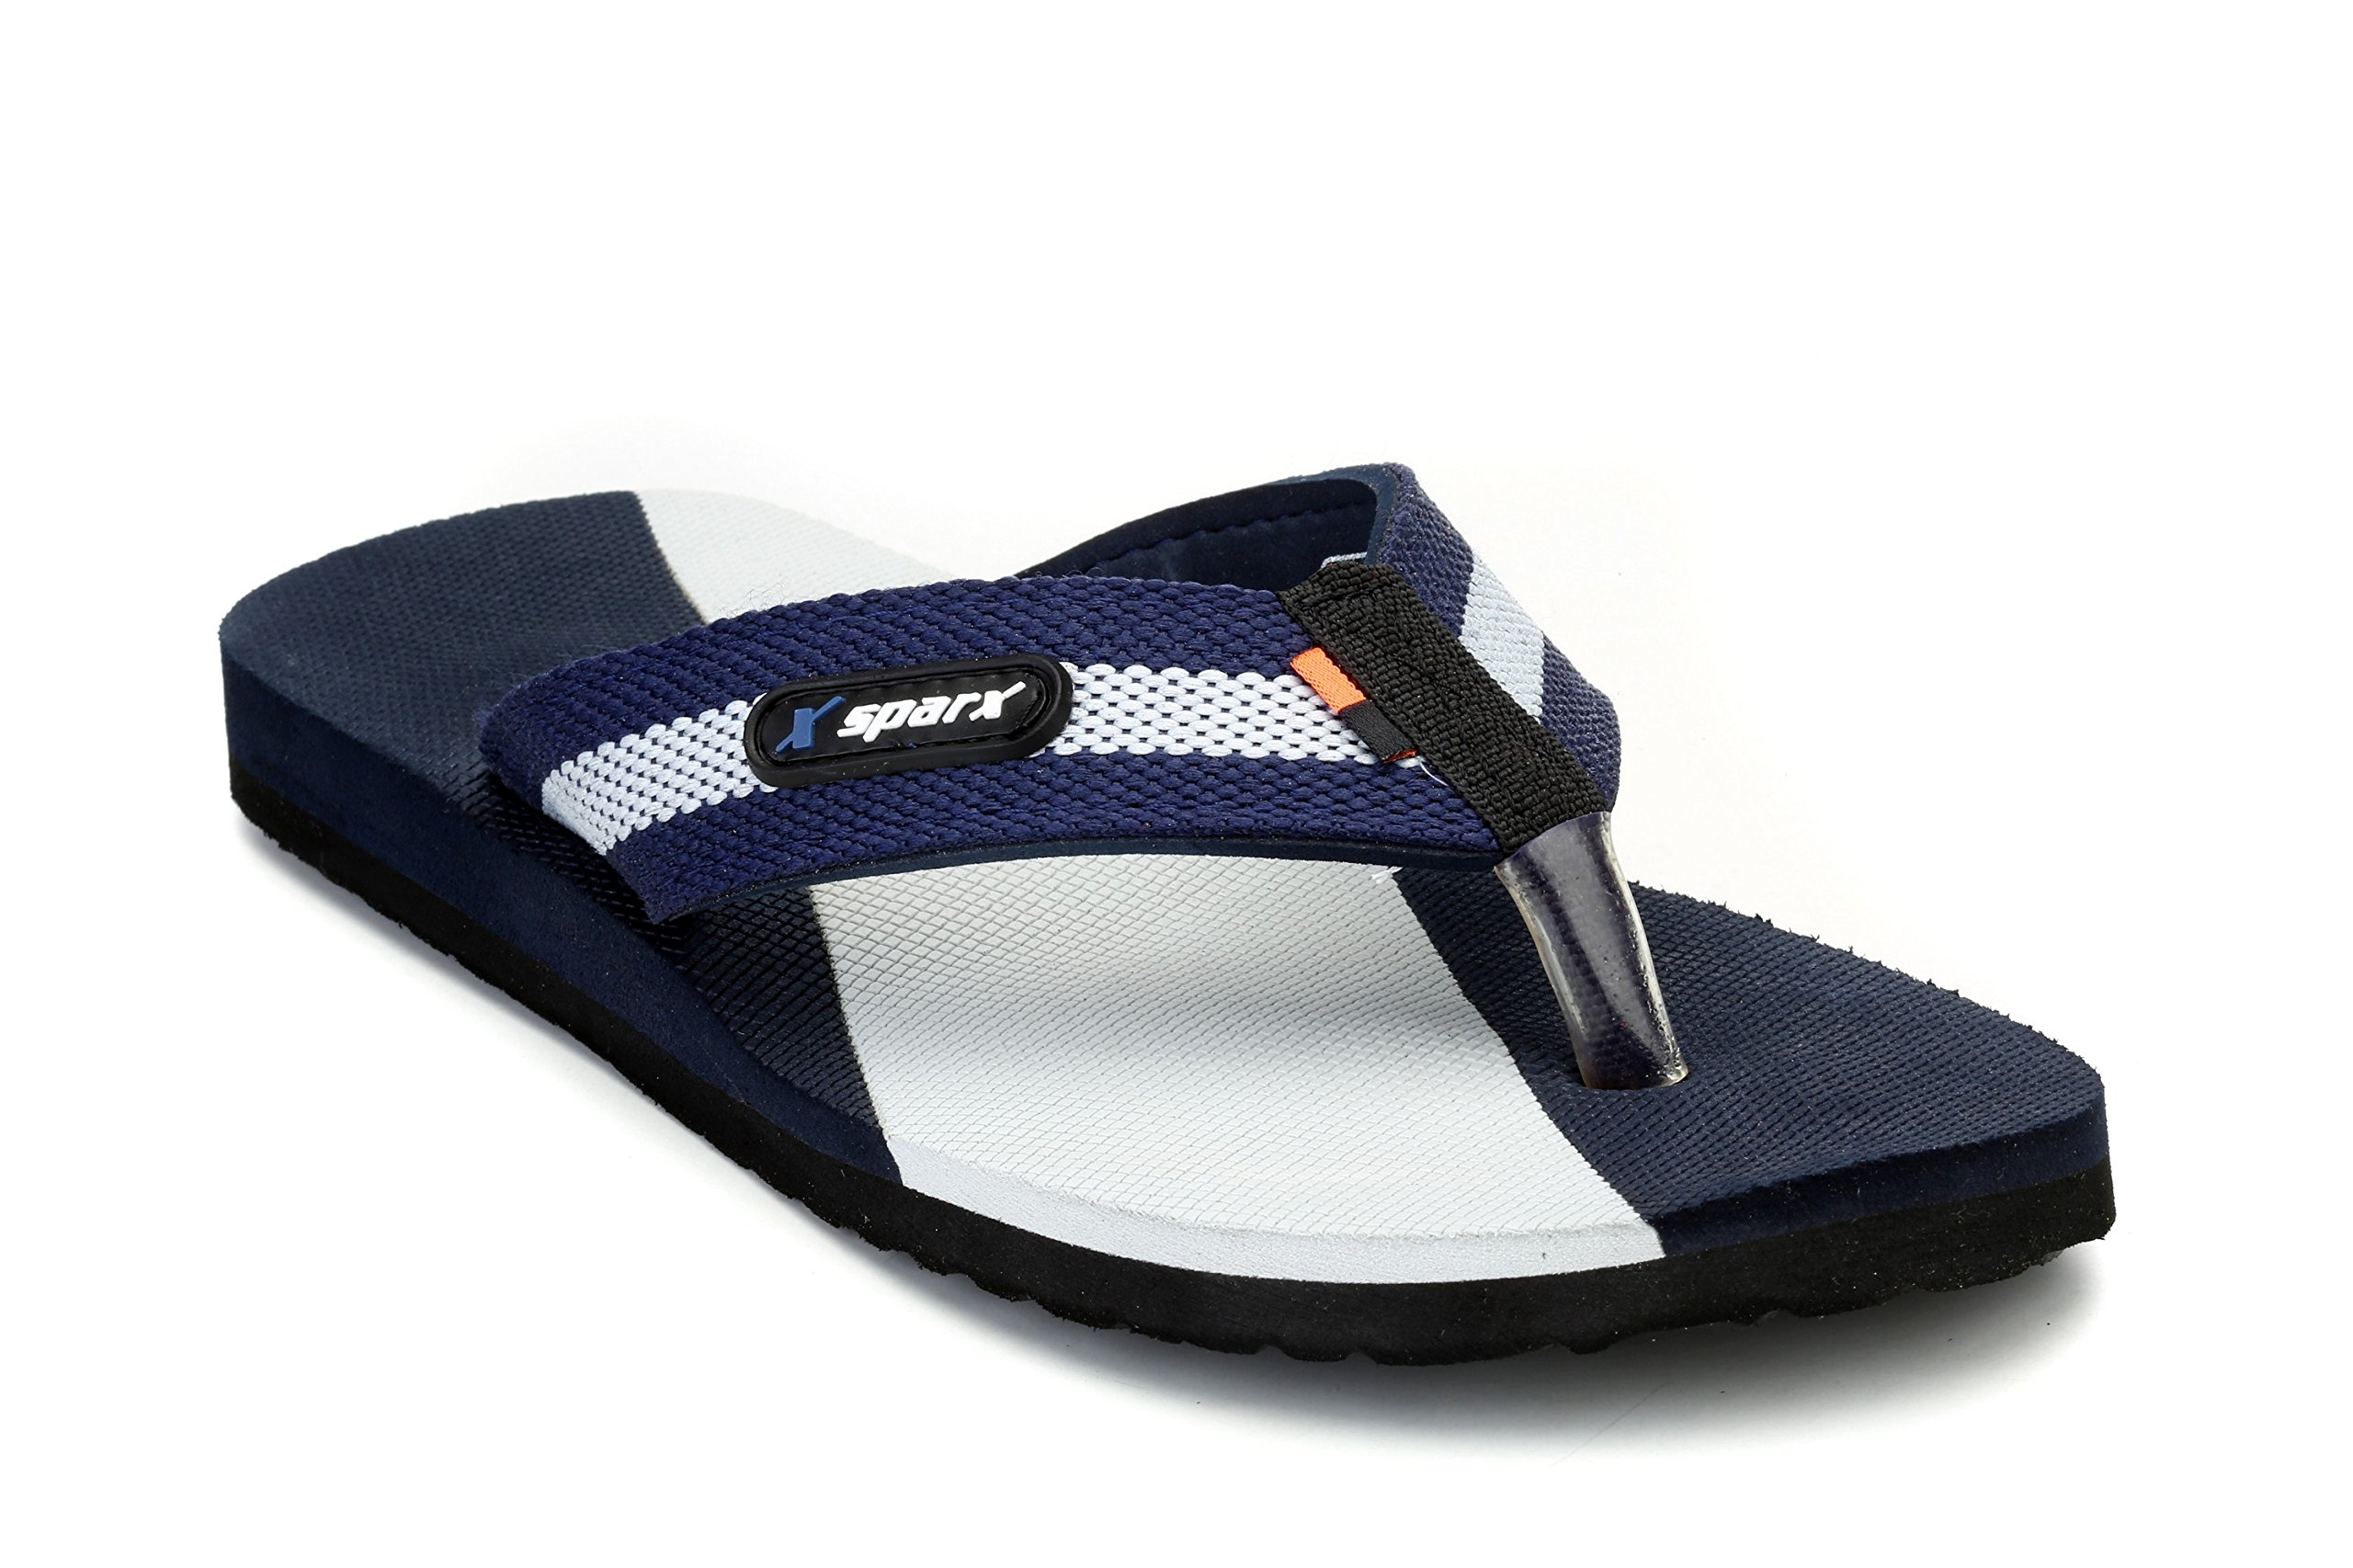 Sparx Men's Flip-Flops and House Slippers product image